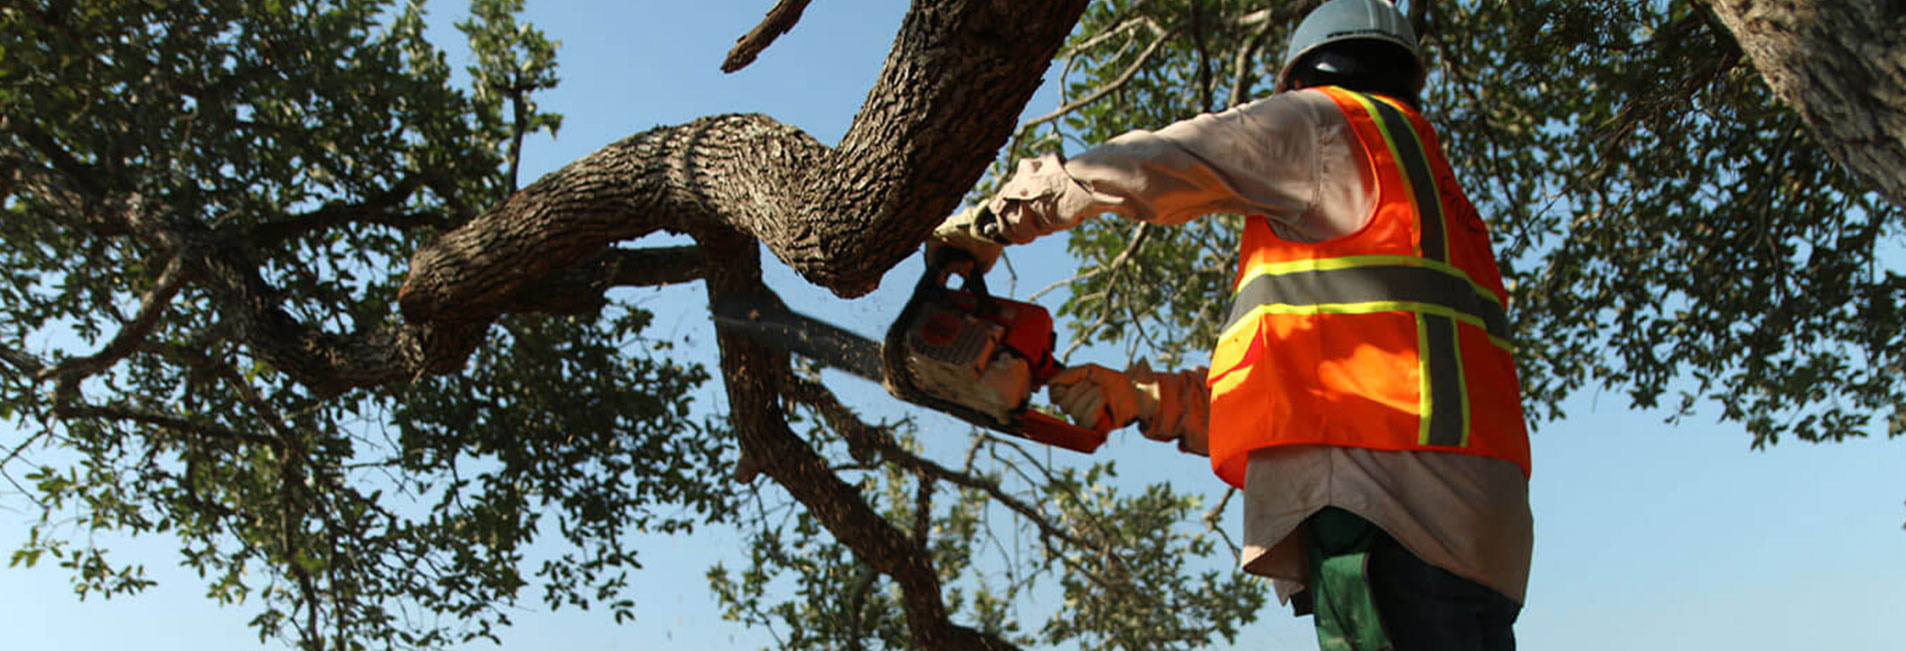 Cedar Eaters Professional Hand Crew Cutting Chipping